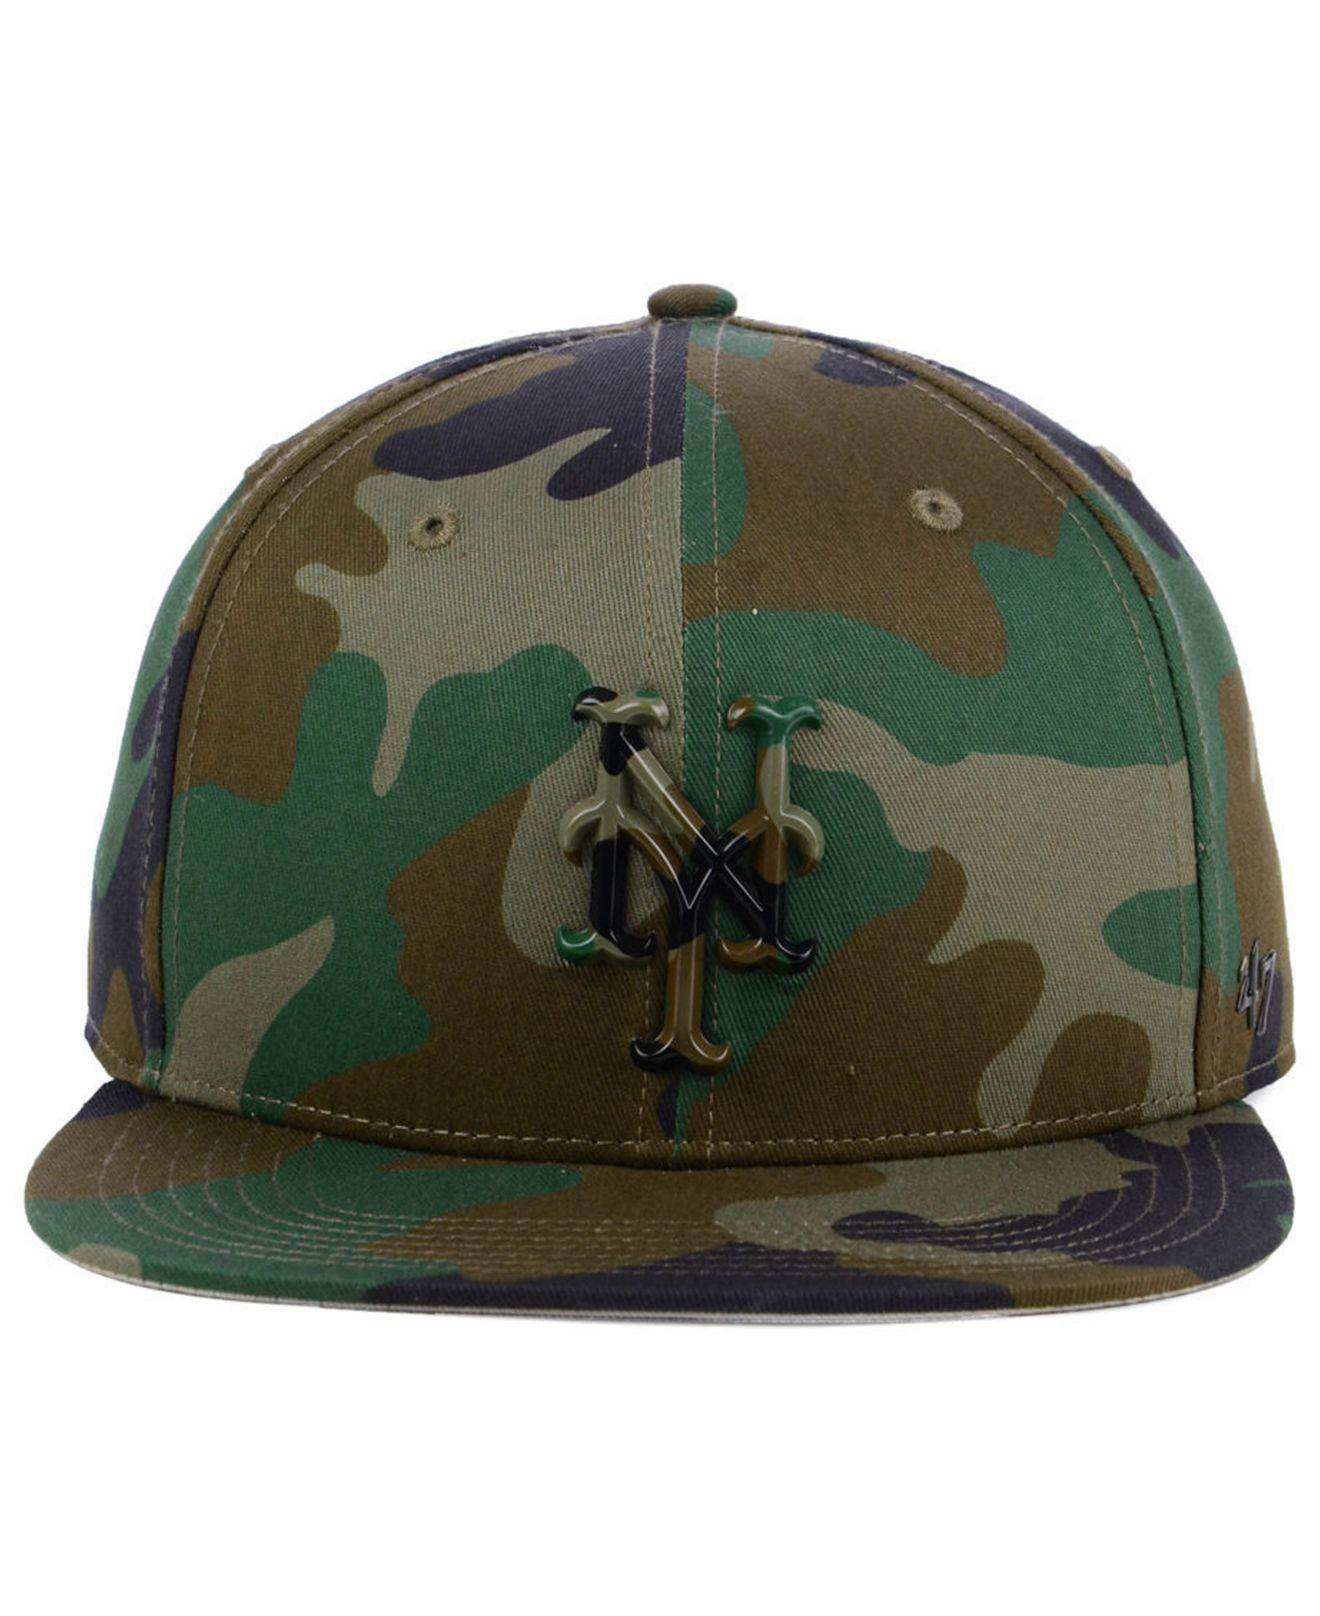 super popular 9ce78 247aa free shipping lyst 47 brand new york mets camo snapback cap in green for  men 7109a